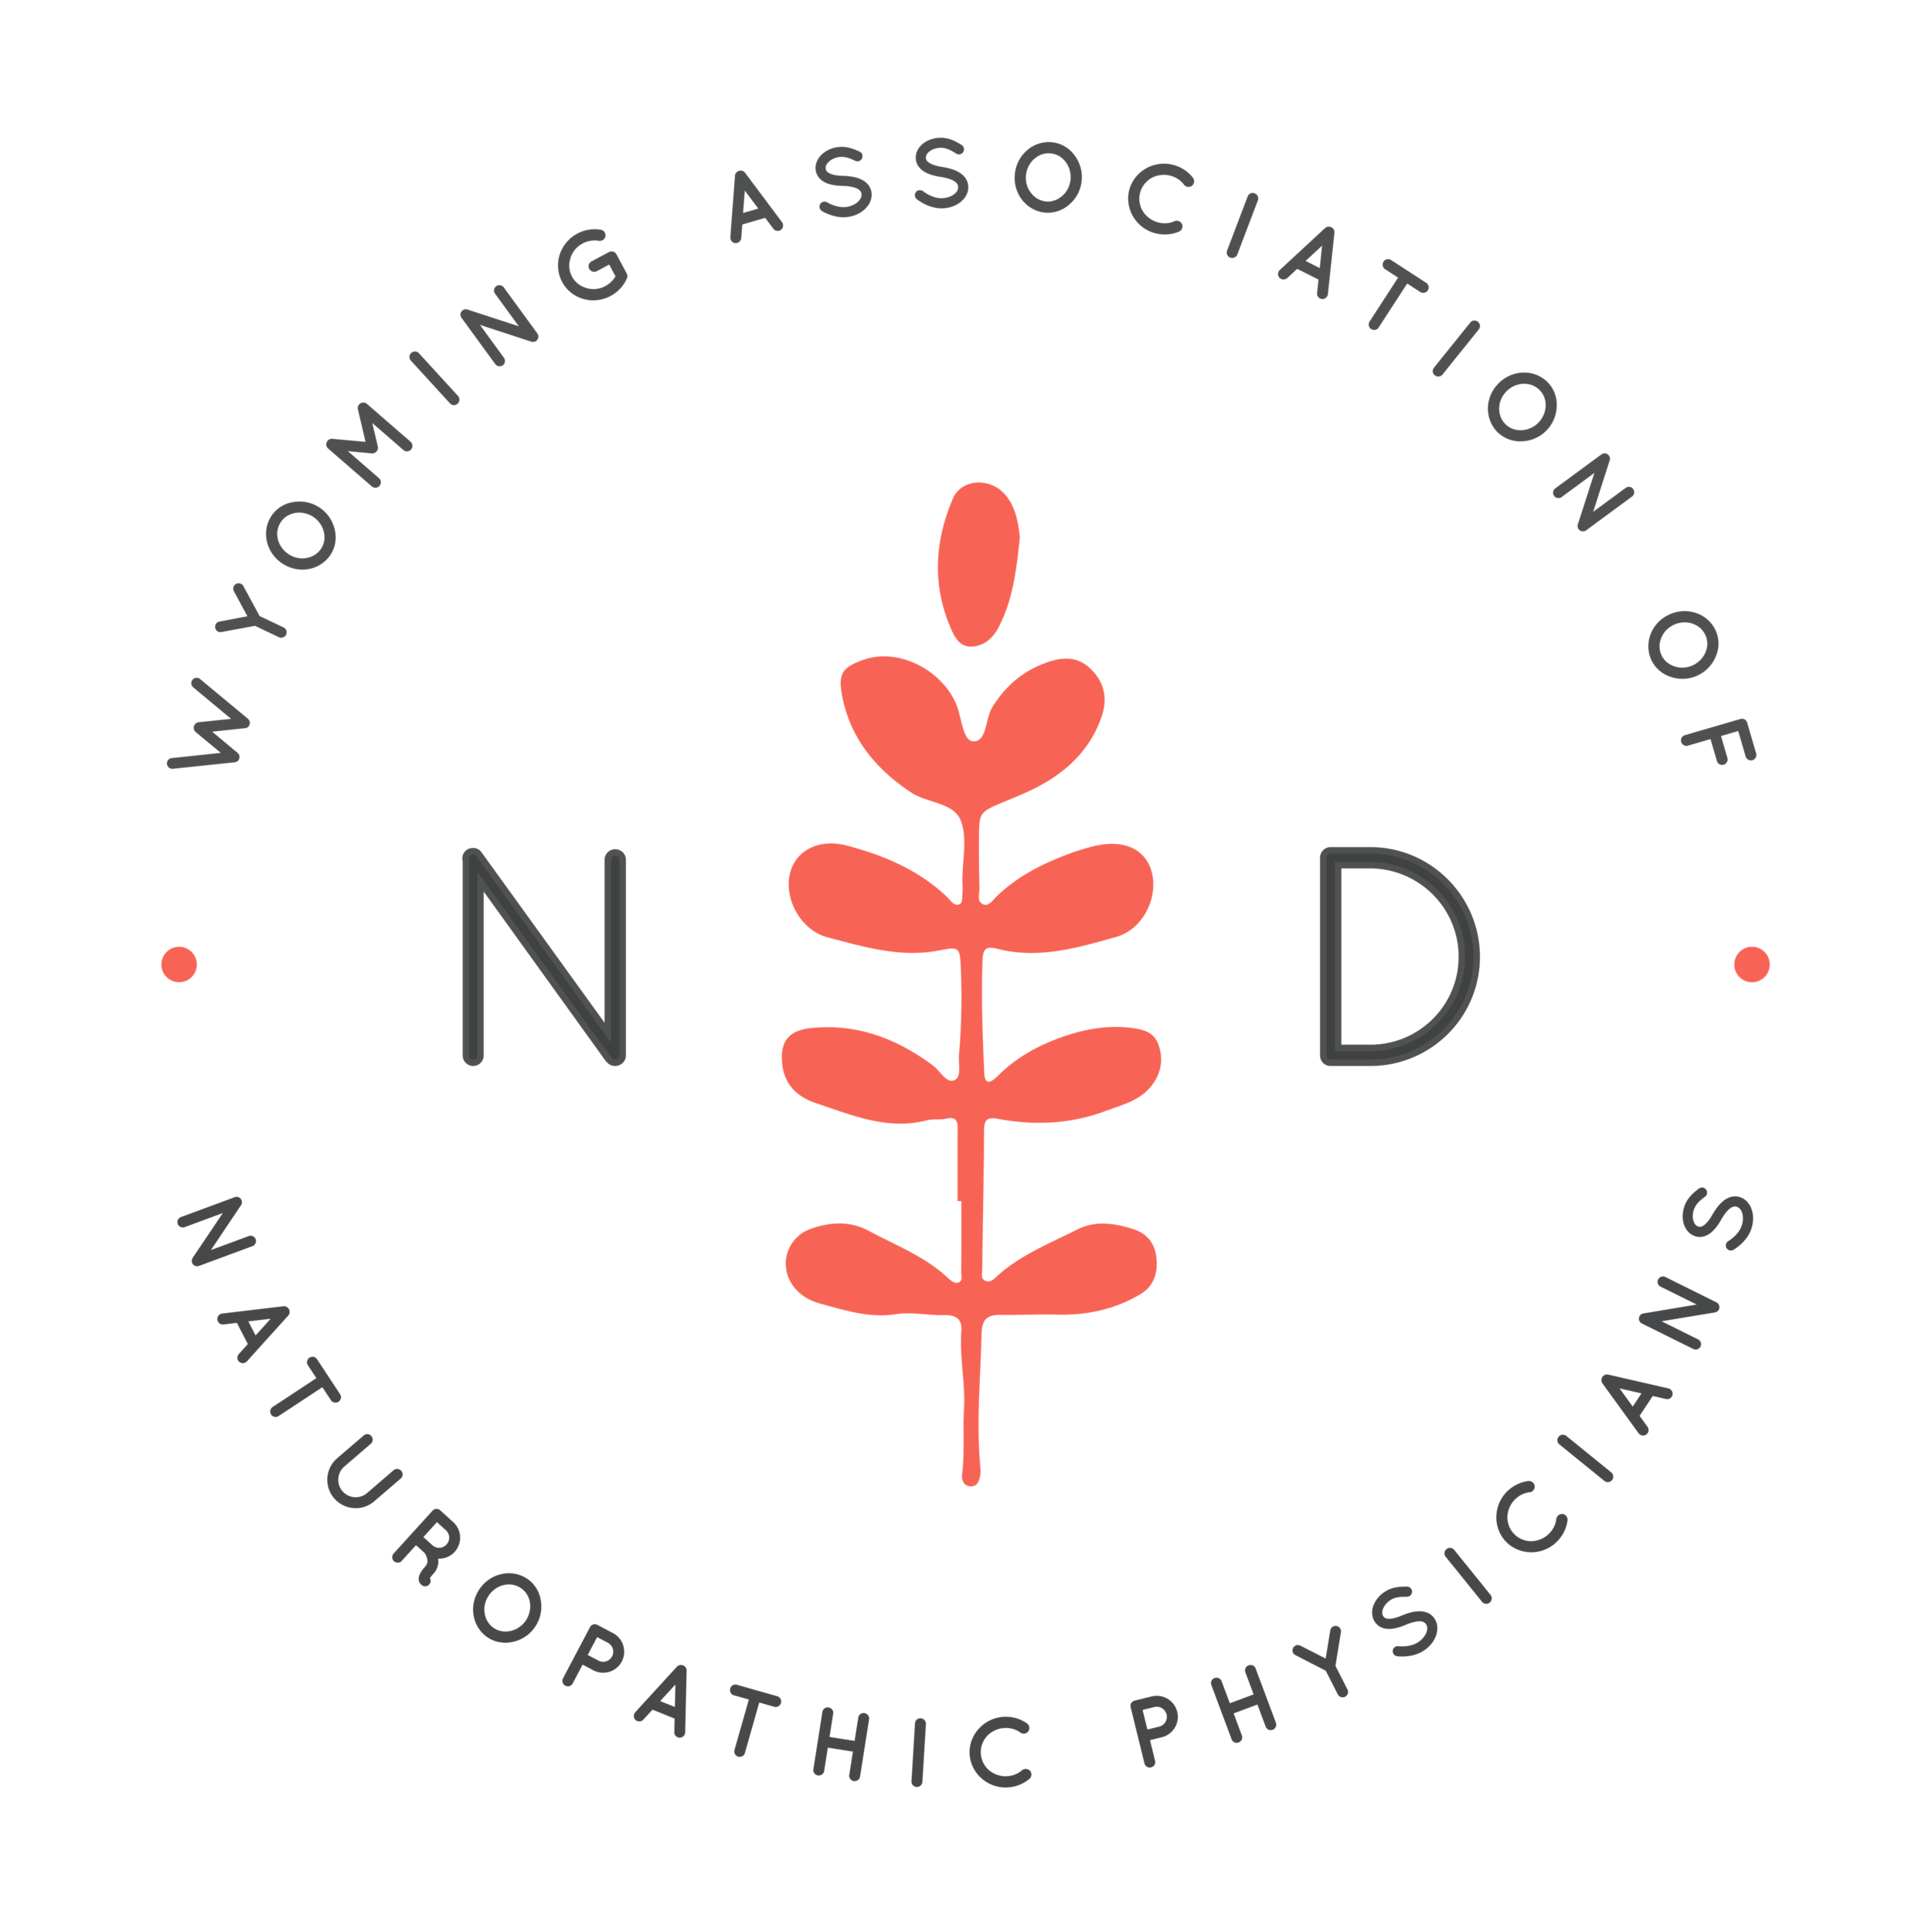 Wyoming Association of Naturopathic Physicians